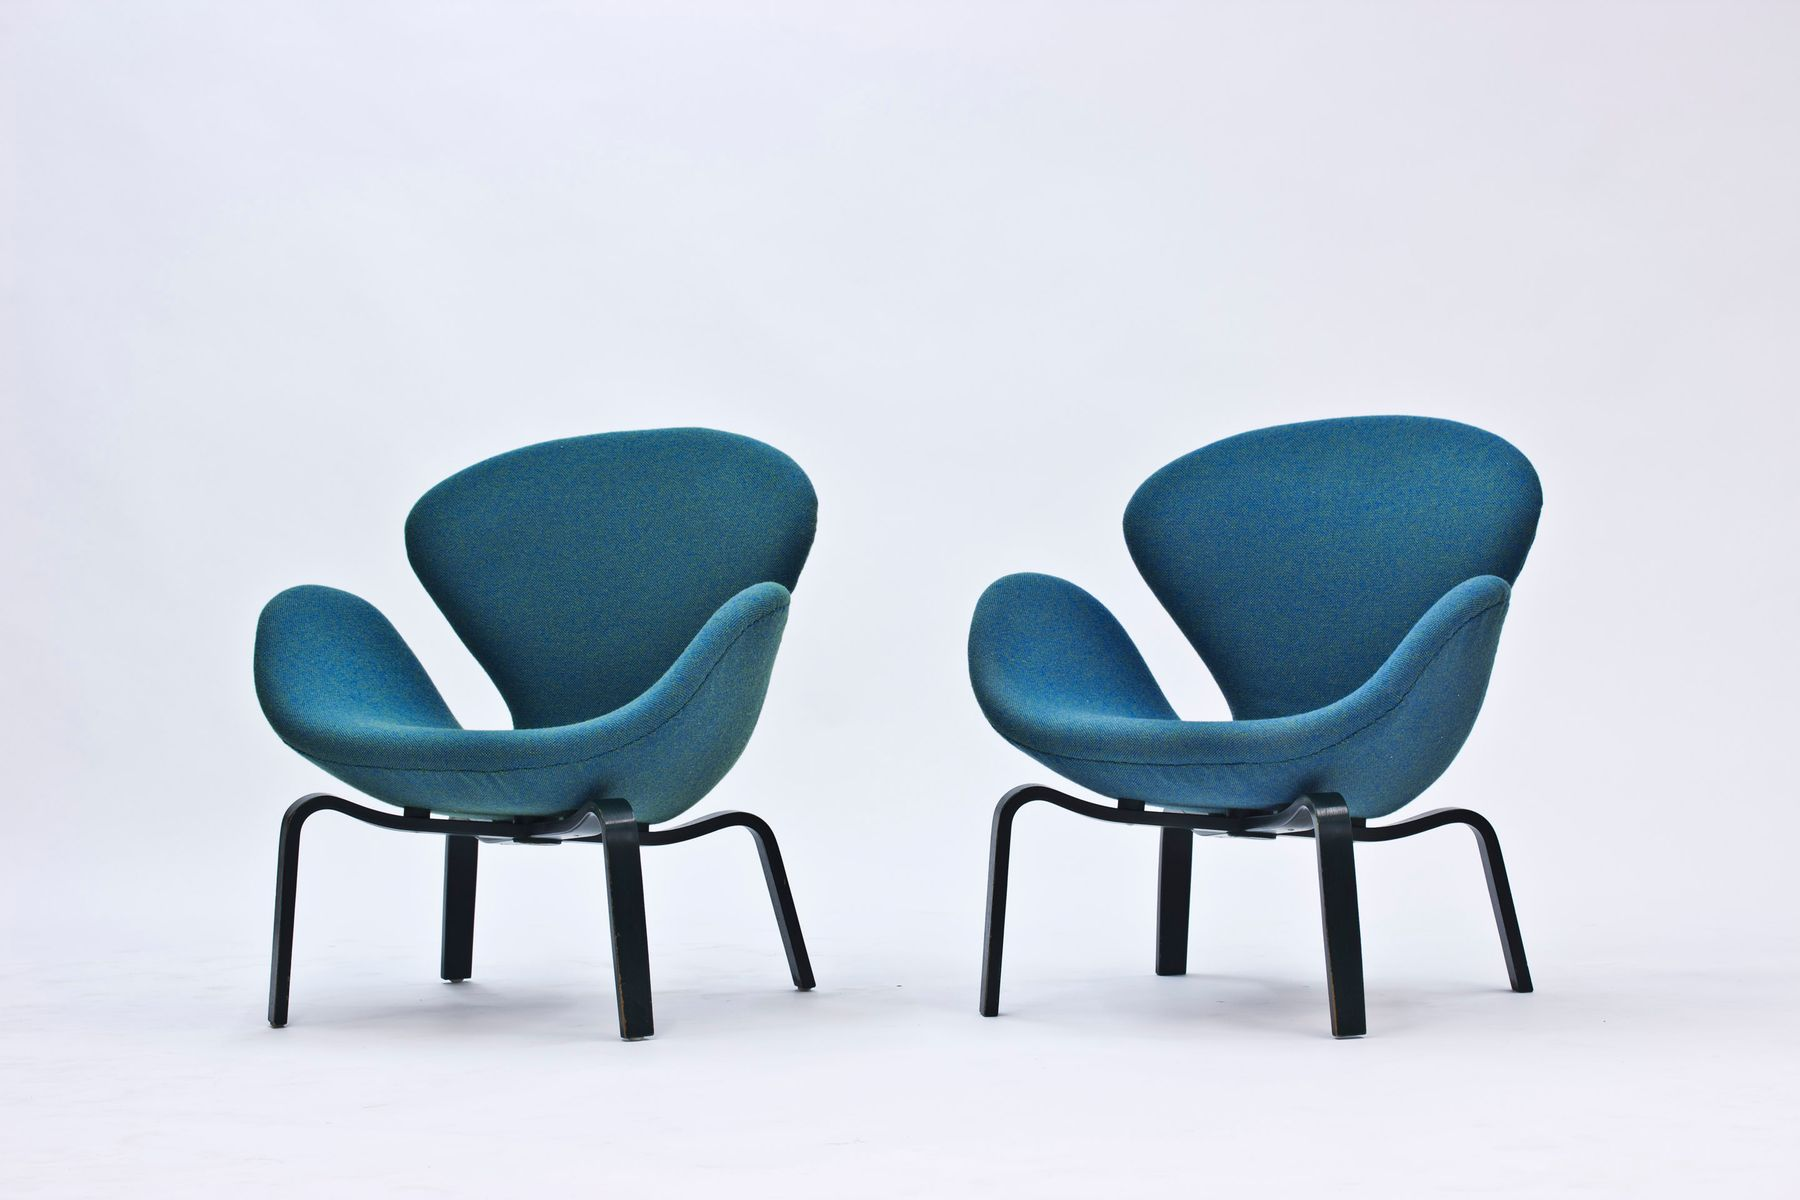 swan chairs by arne jacobsen for fritz hansen 1969 set of 2 for sale at pamono. Black Bedroom Furniture Sets. Home Design Ideas